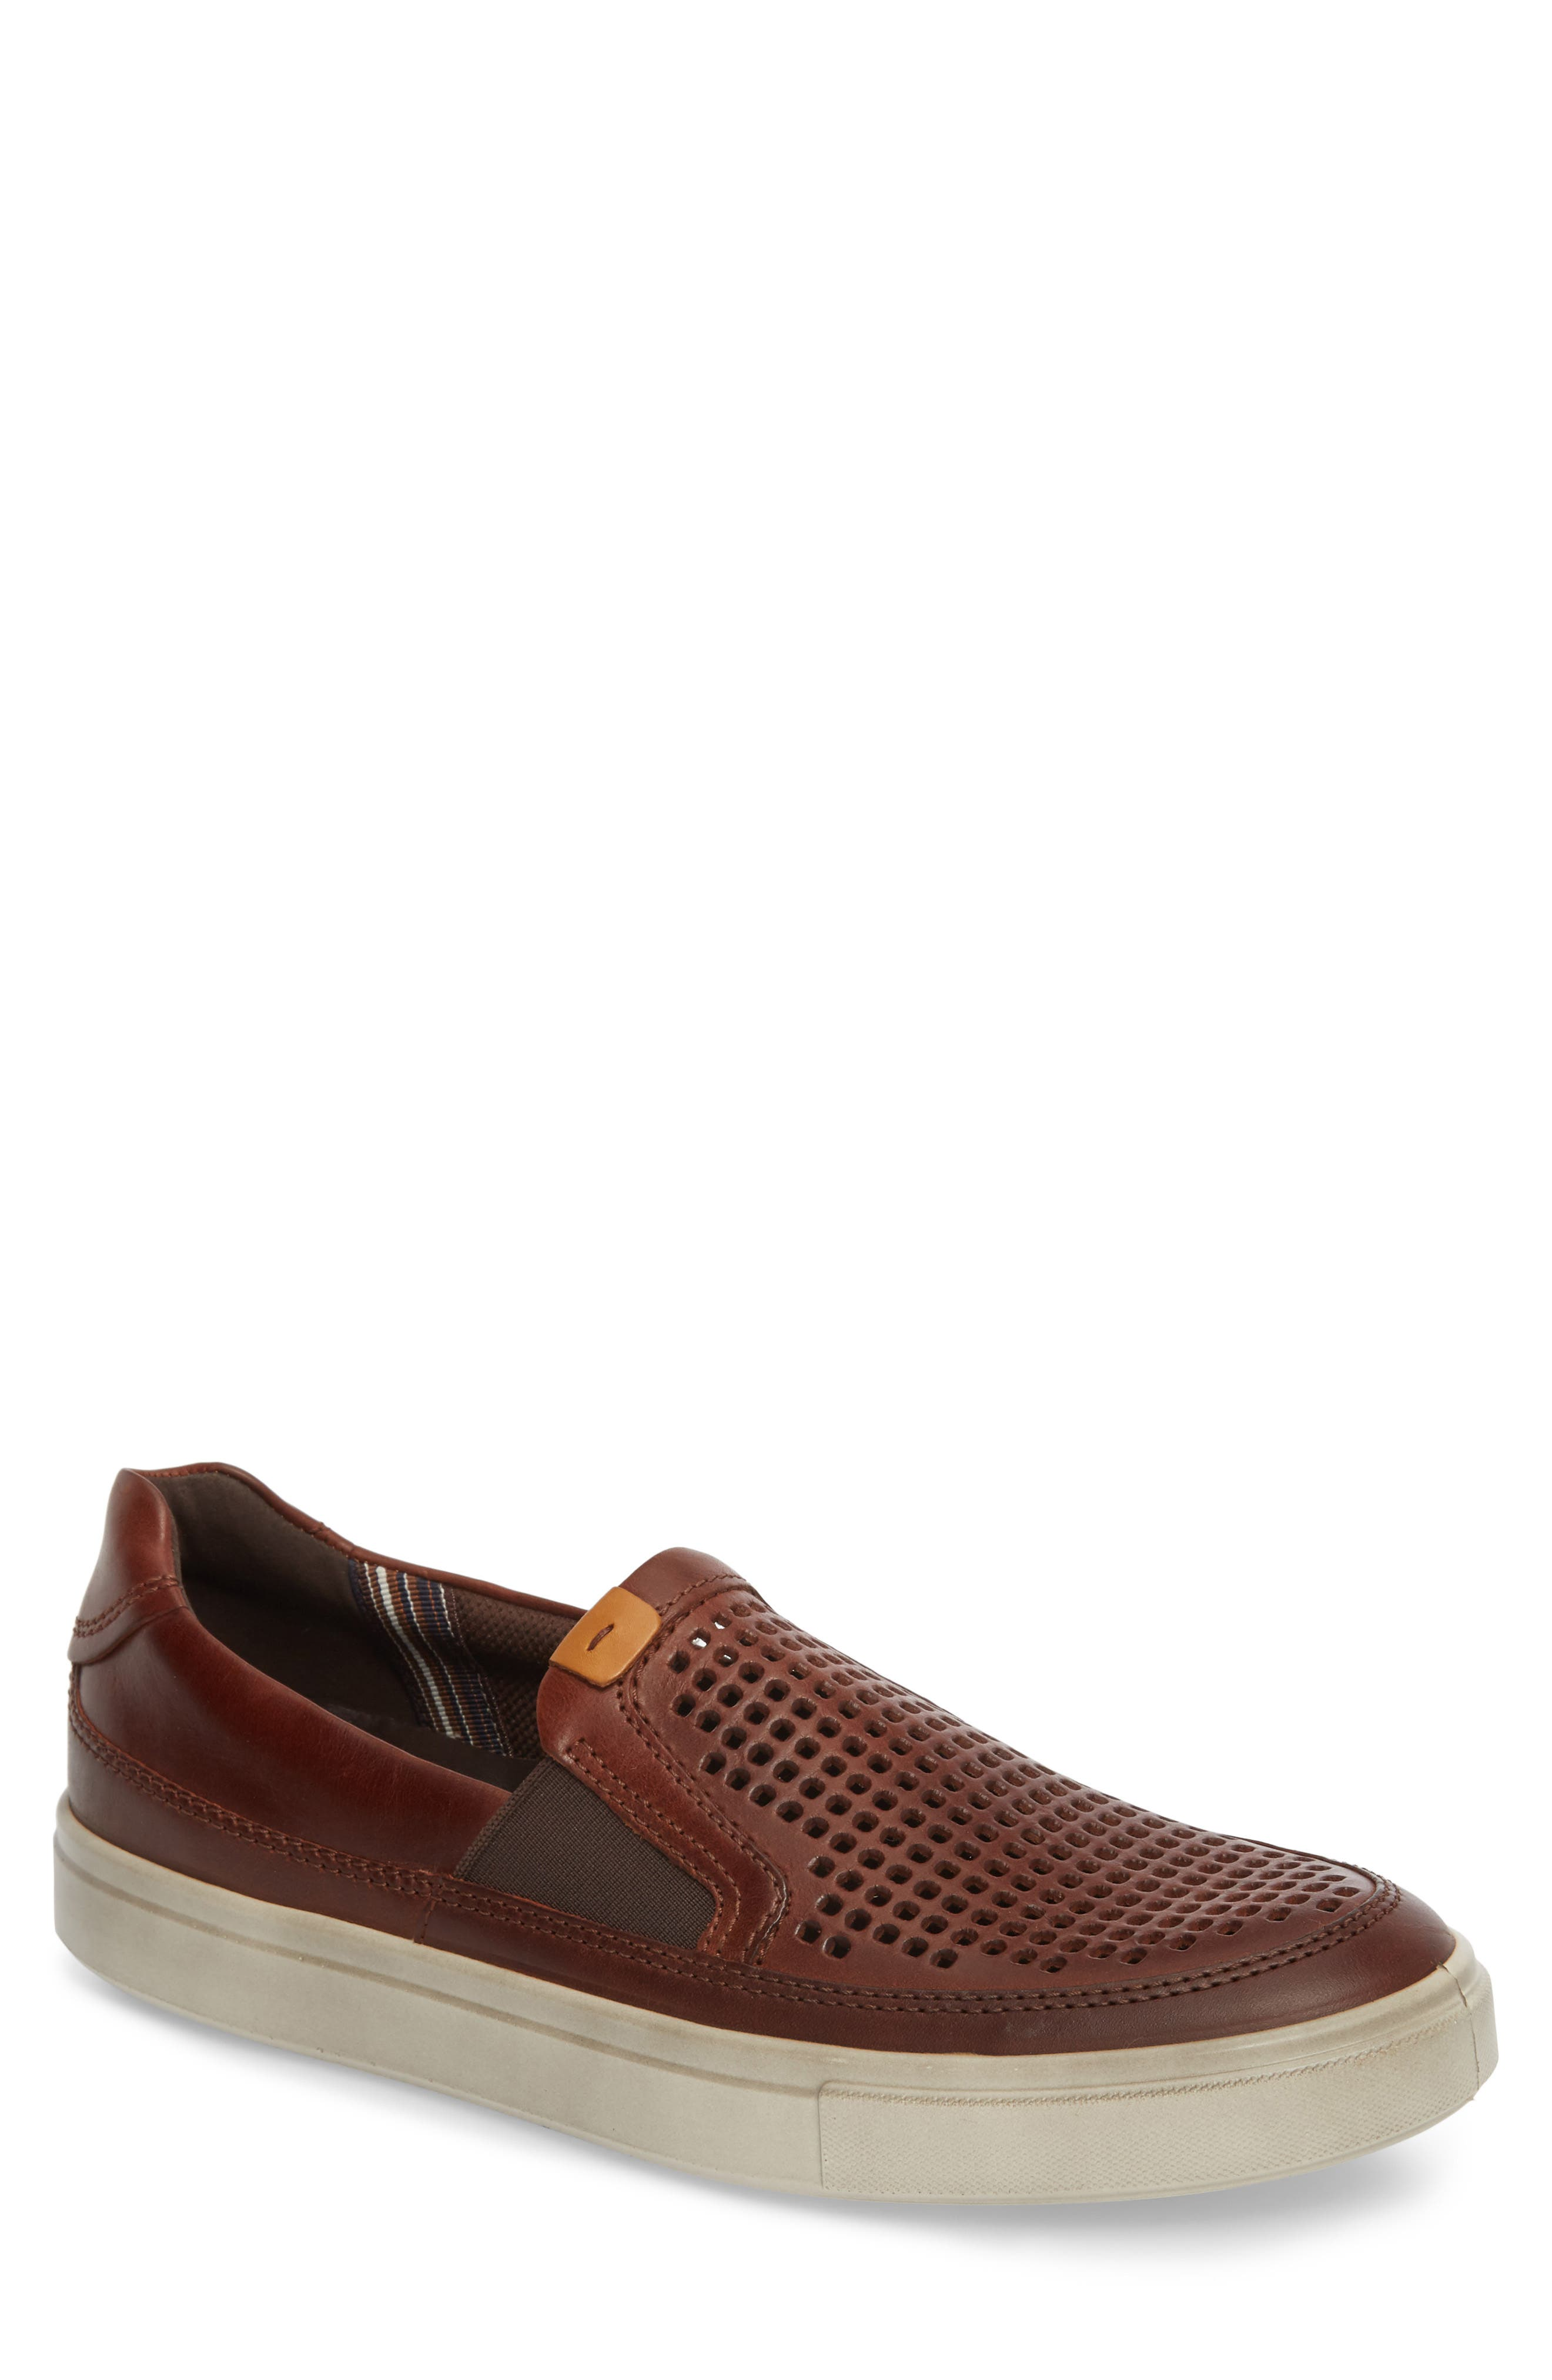 Kyle Perforated Slip-On Sneaker,                             Main thumbnail 1, color,                             Cognac Leather